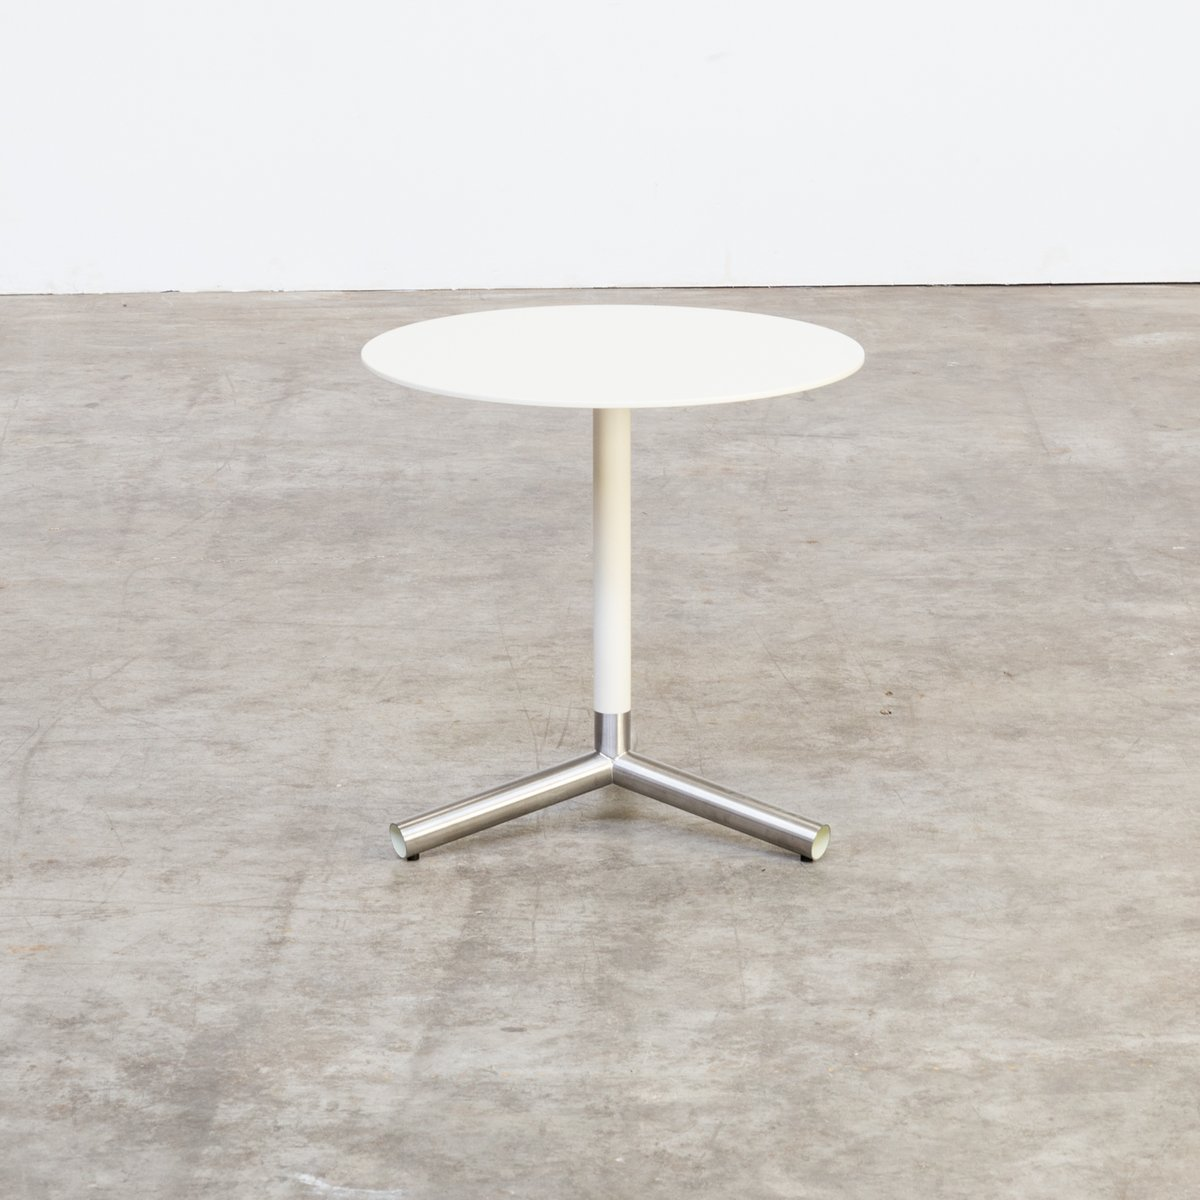 White Metal End Table White And Off White Metal Side Table 1980s En Vente Sur Pamono